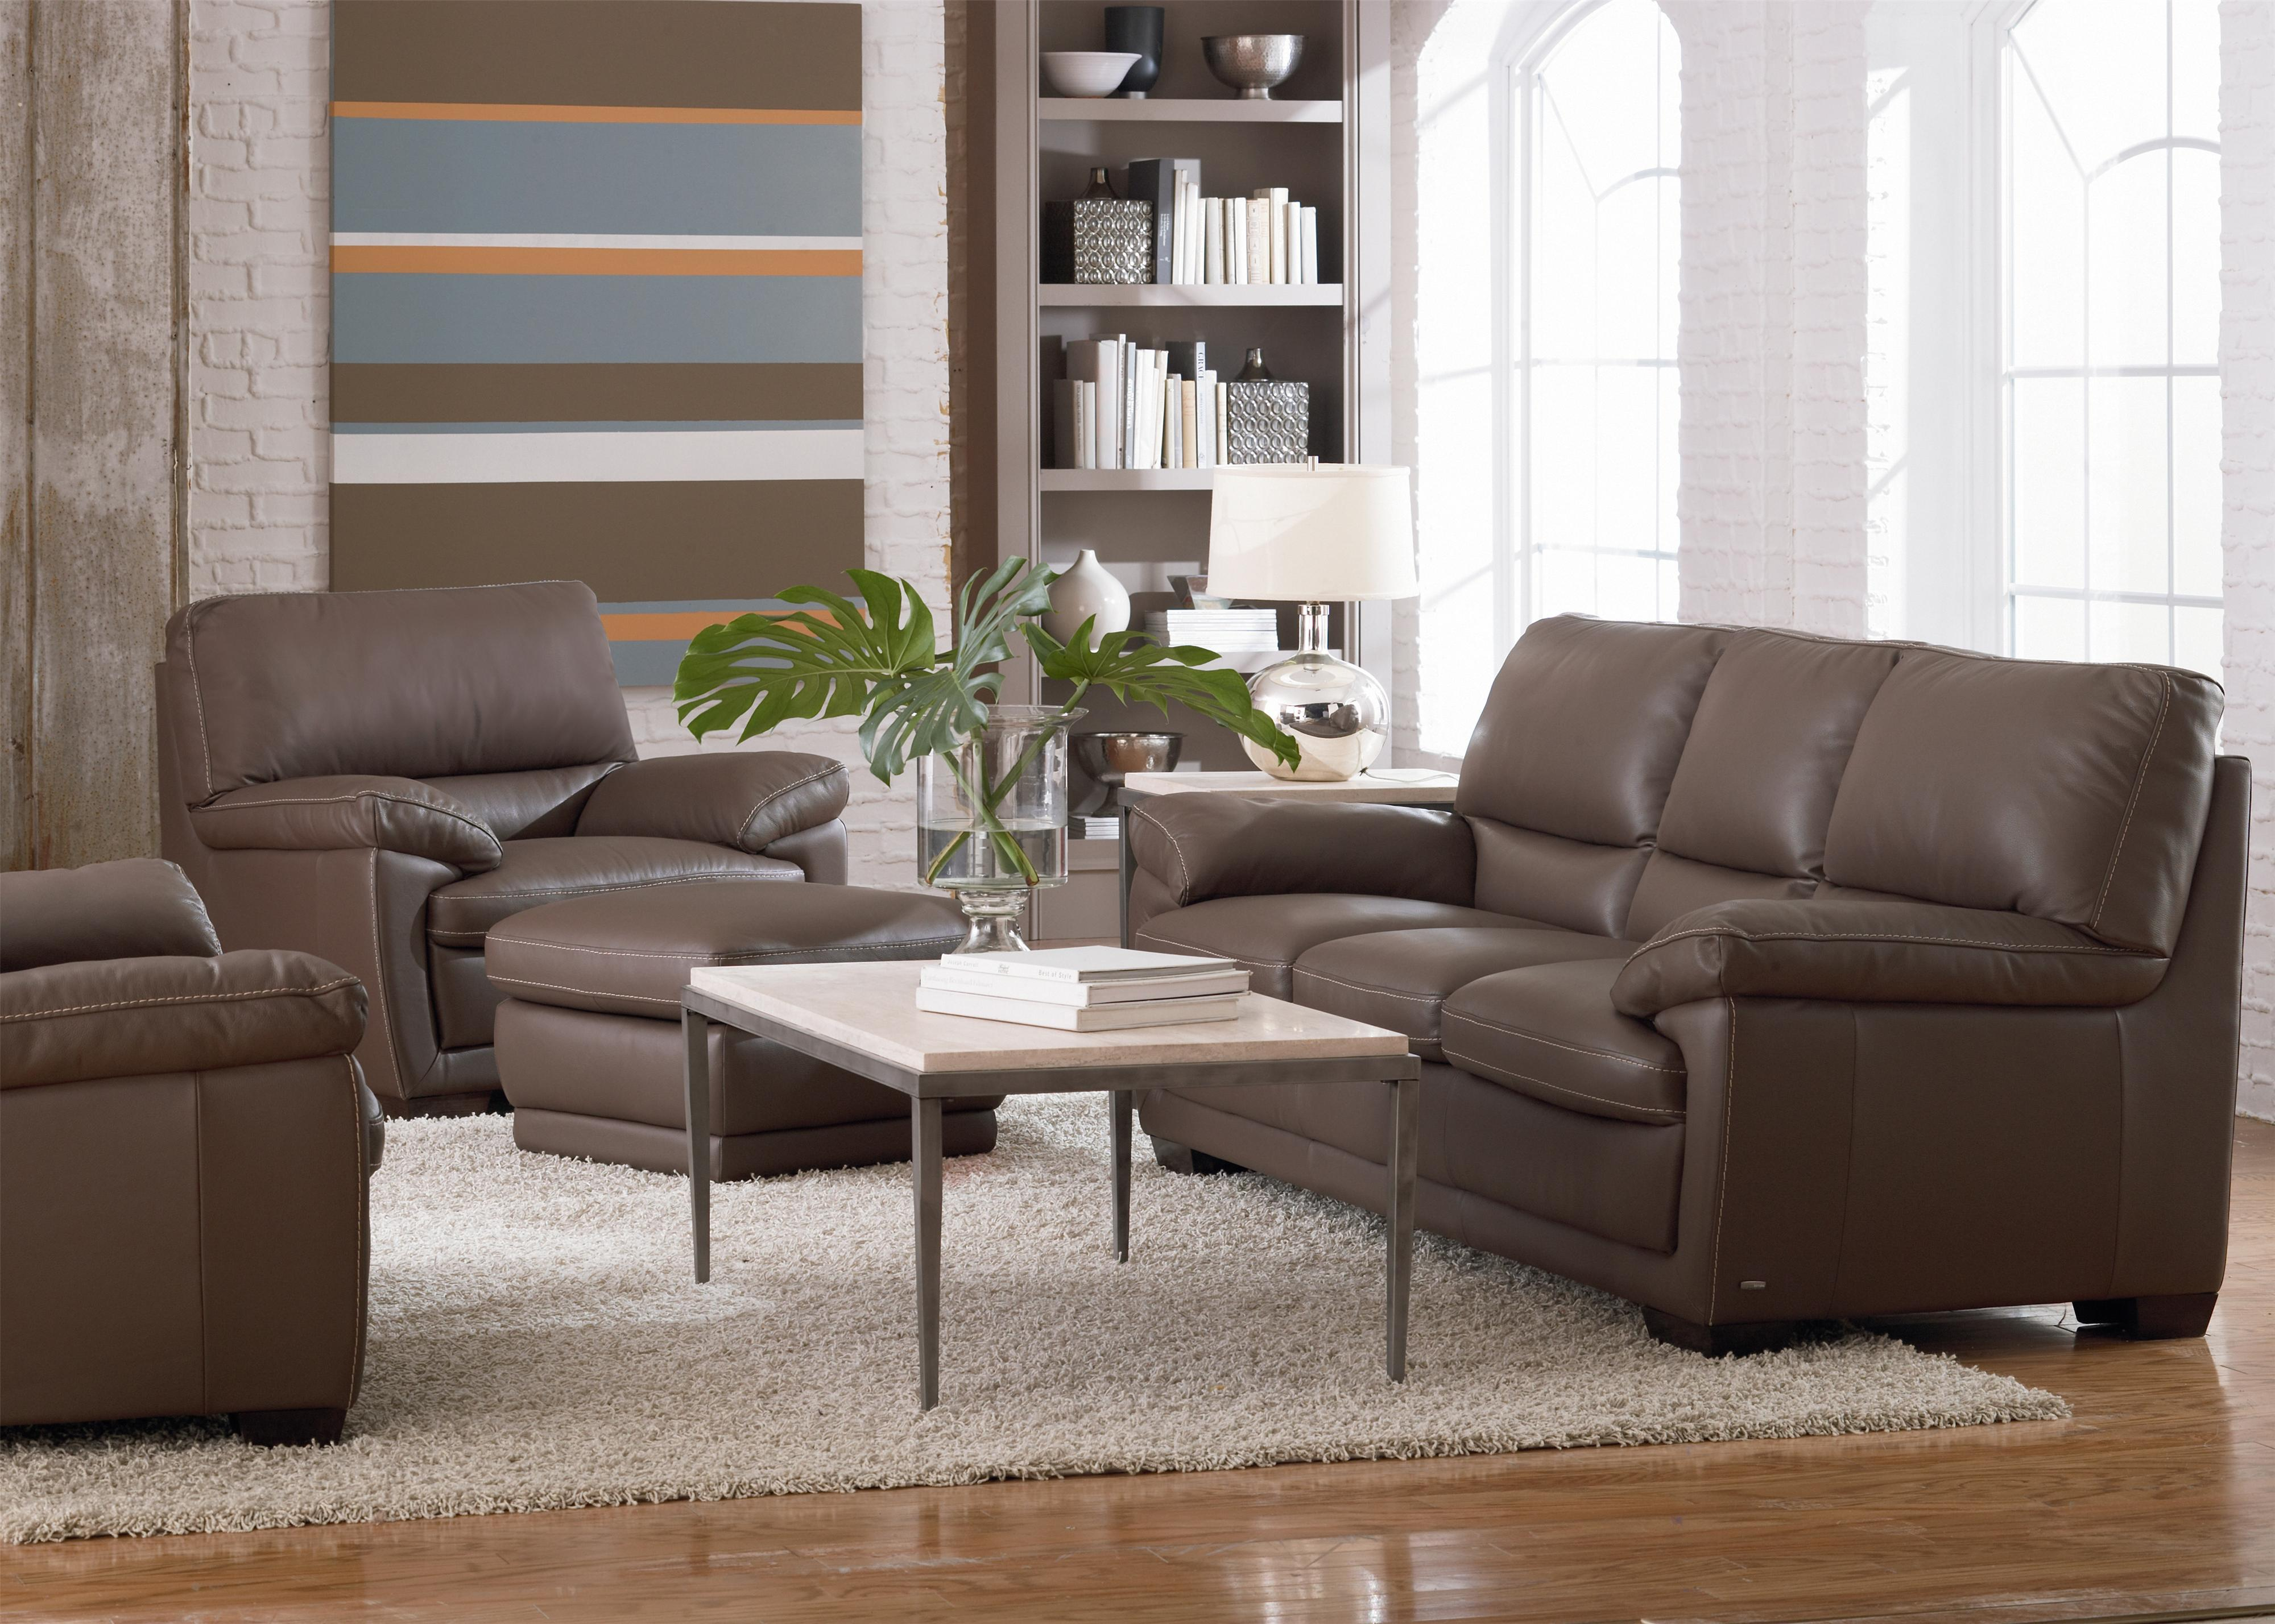 Natuzzi Editions B674 Stationary Living Room Group. Cottage Living Rooms. Wall Colors For Living Rooms. Duck Egg Blue And Cream Living Room Ideas. Furniture Designs For Living Room. Outdoor Living Room Designs. Best Behr Paint Colors Living Room. What Is The Best Material For Living Room Furniture. Traditional Indian Living Room Ideas